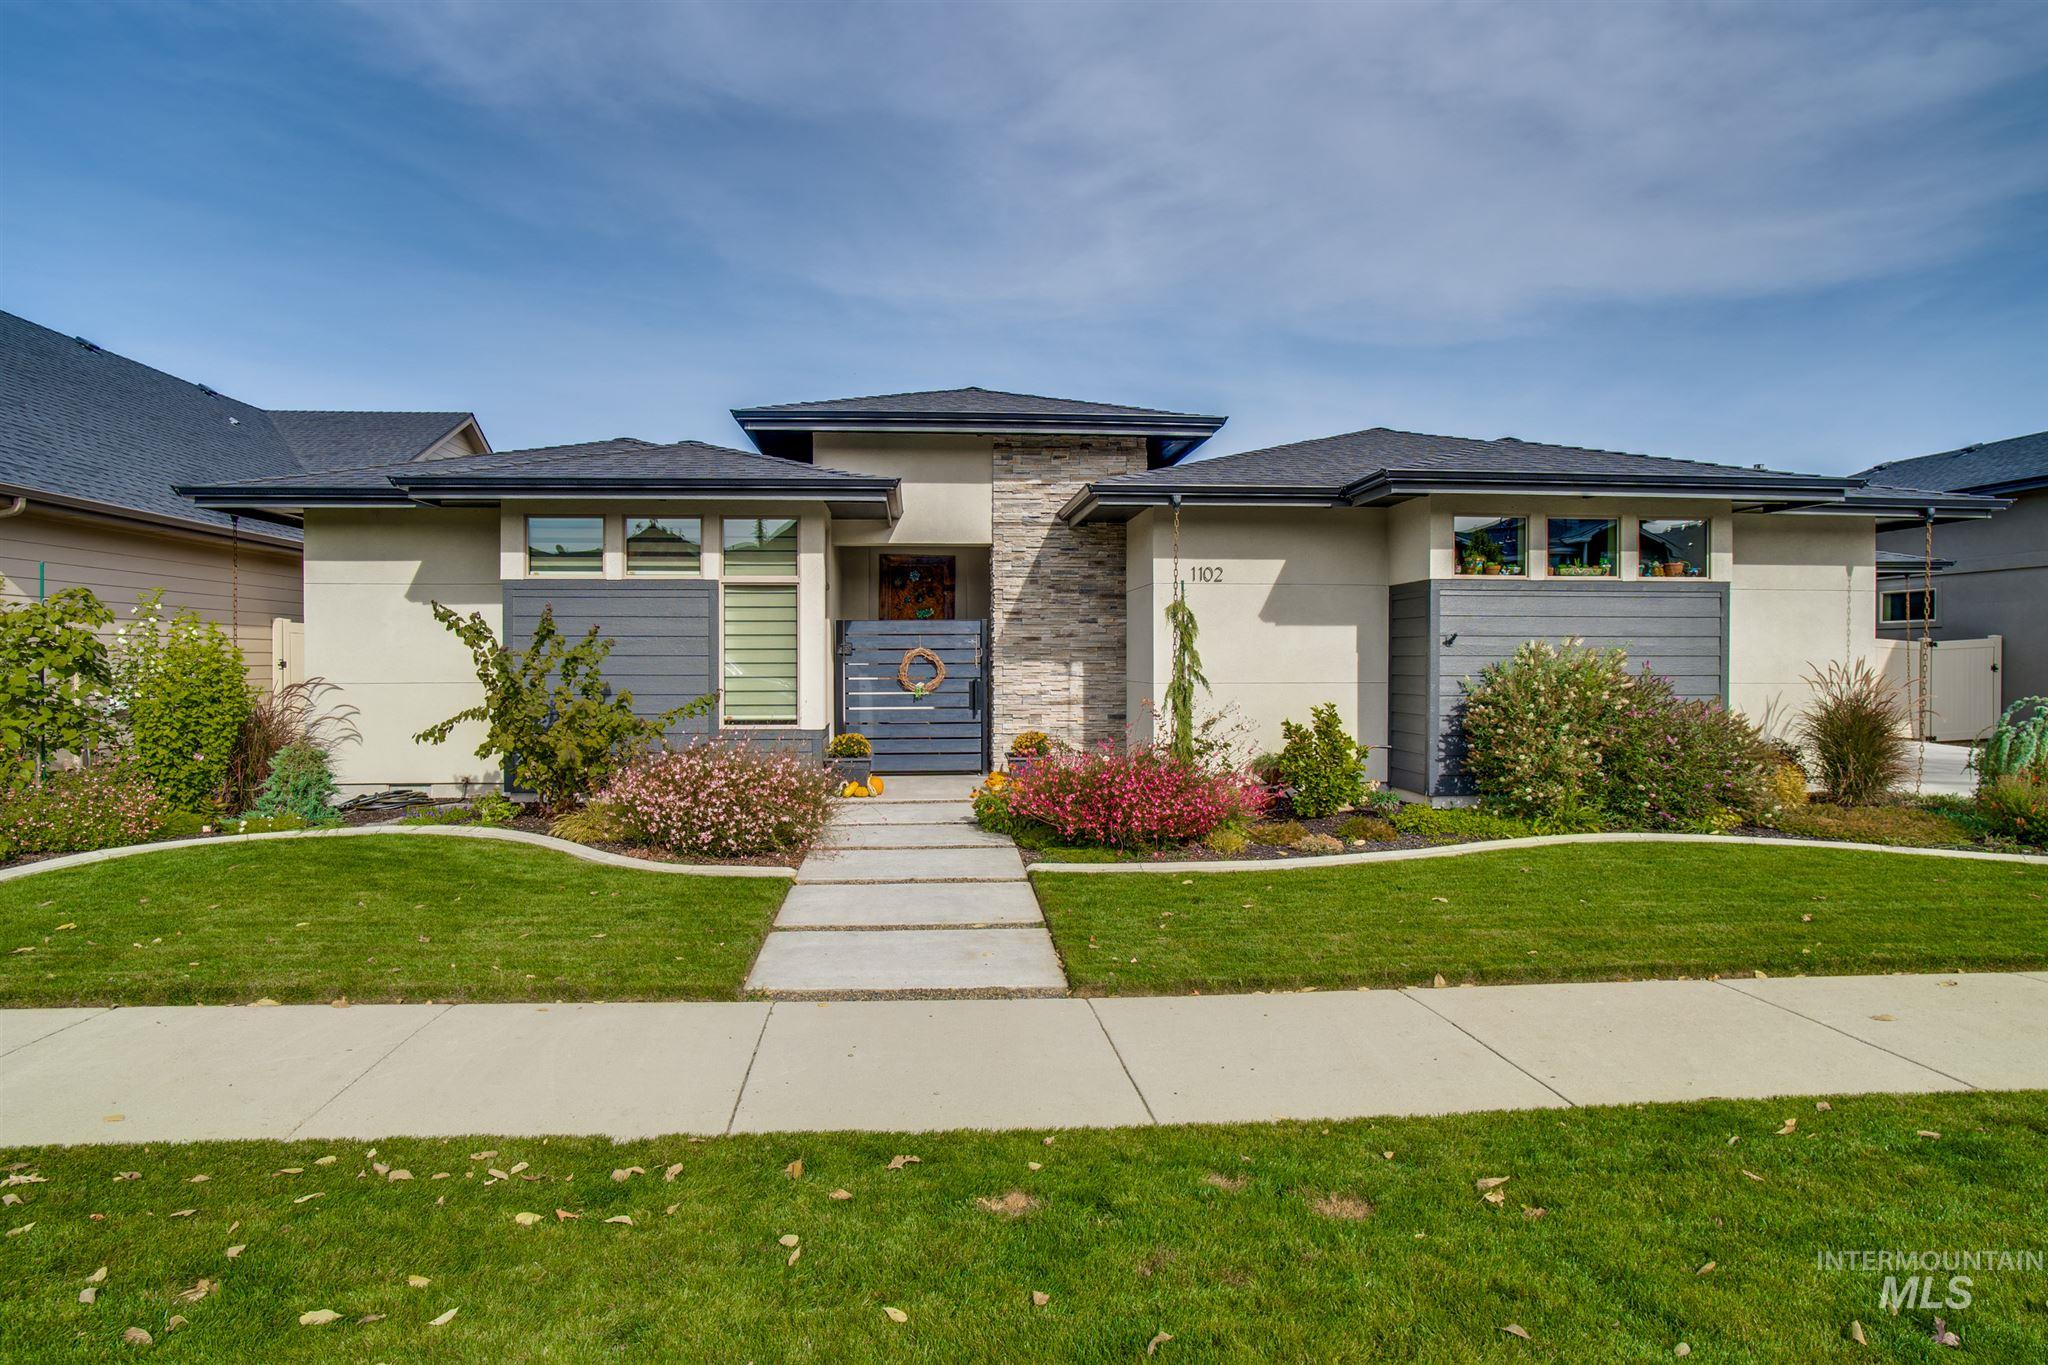 1102 E Radiant Ridge Dr., Meridian, Idaho 83642, 4 Bedrooms, 2.5 Bathrooms, Residential For Sale, Price $625,000, 98784521